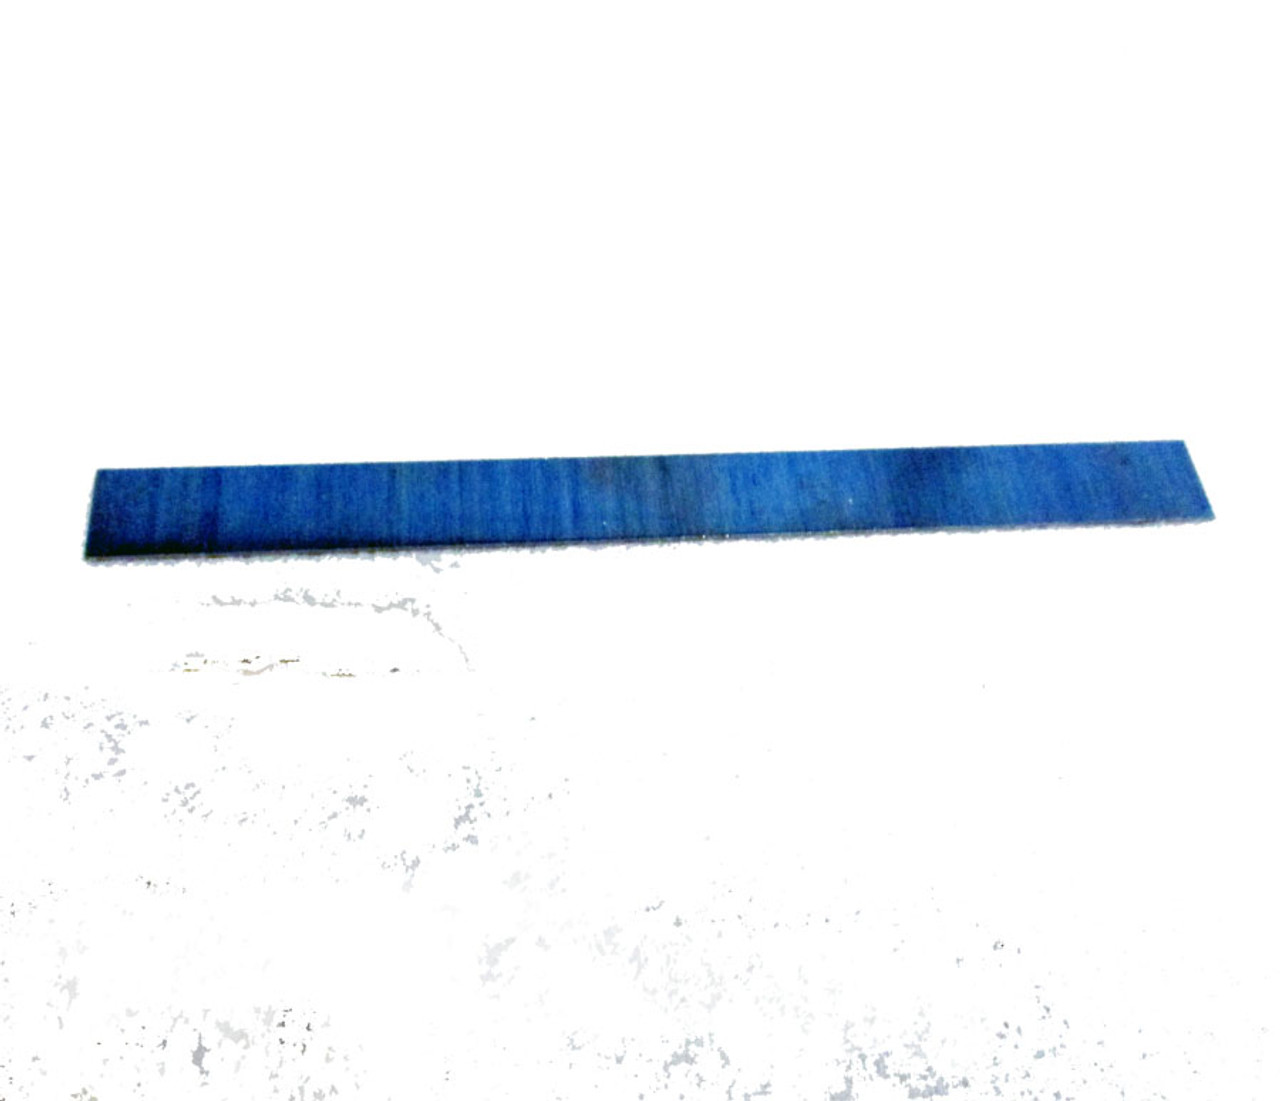 """We found some 10-95 steel blanks for you. You get 10 pieces in a pack.  0.015 by 6"""" by 1/2 inch.  Good deal!"""